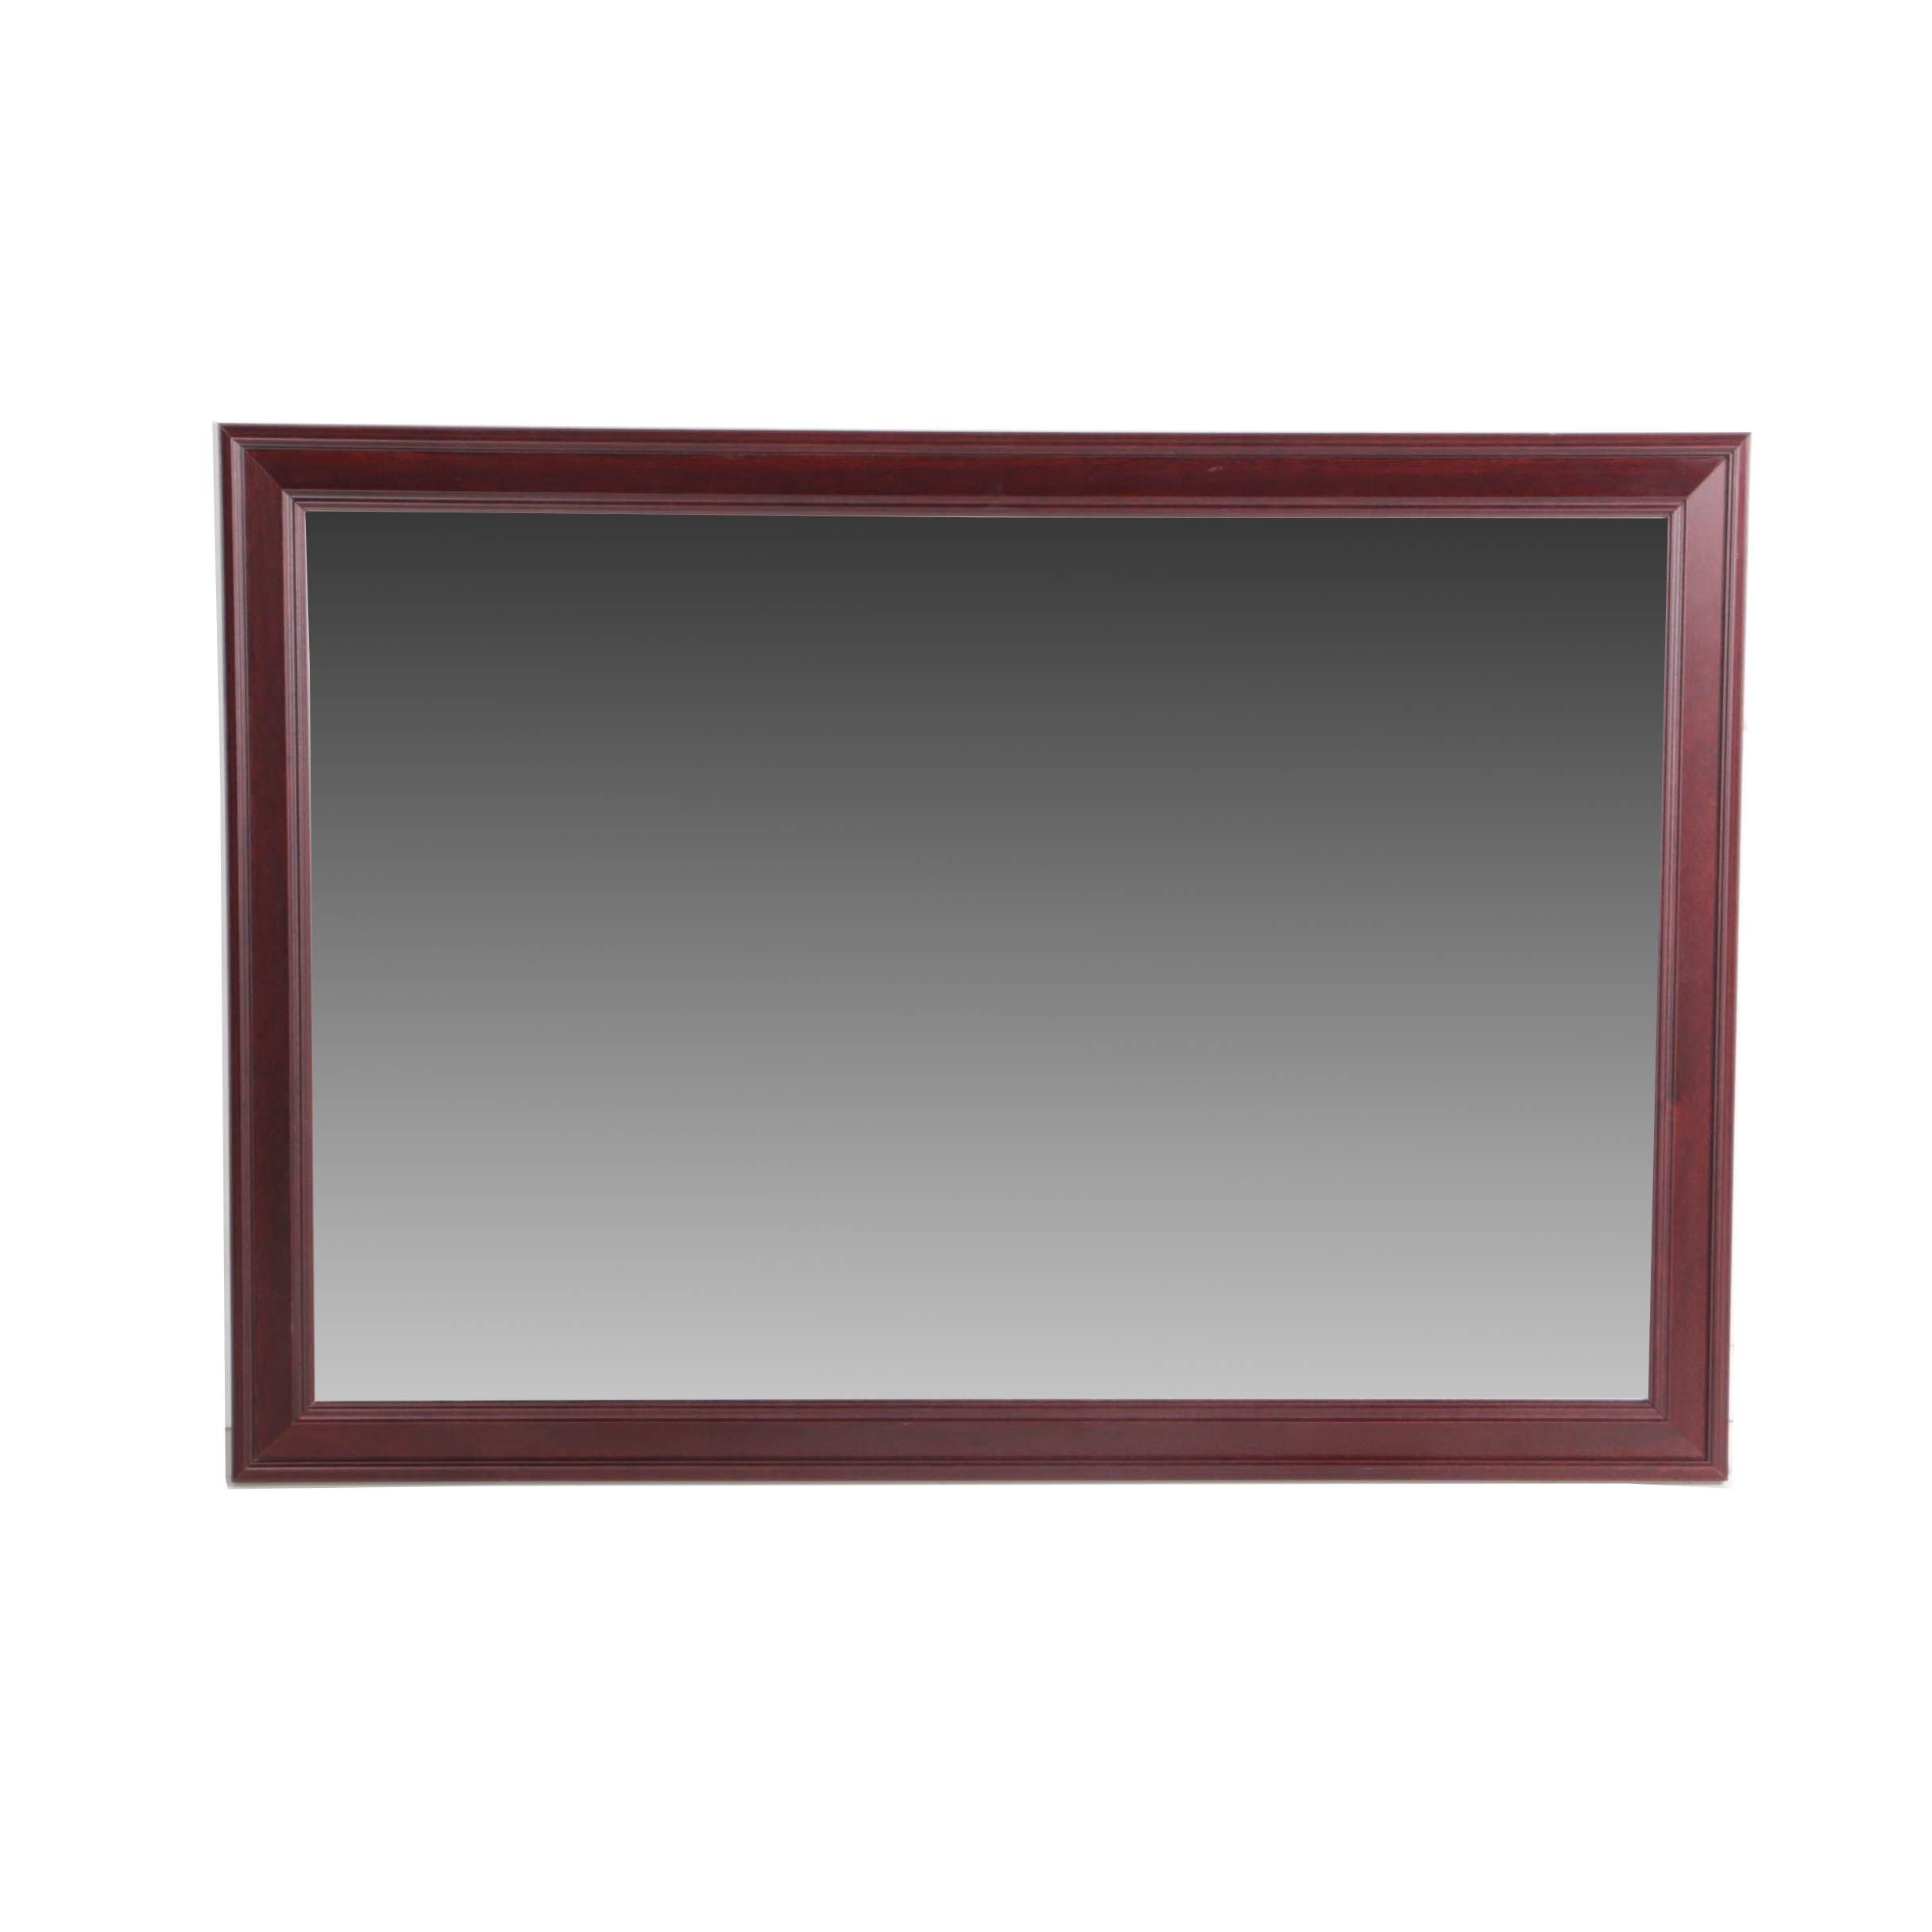 Wall Mirror with Contemporary Wood Frame